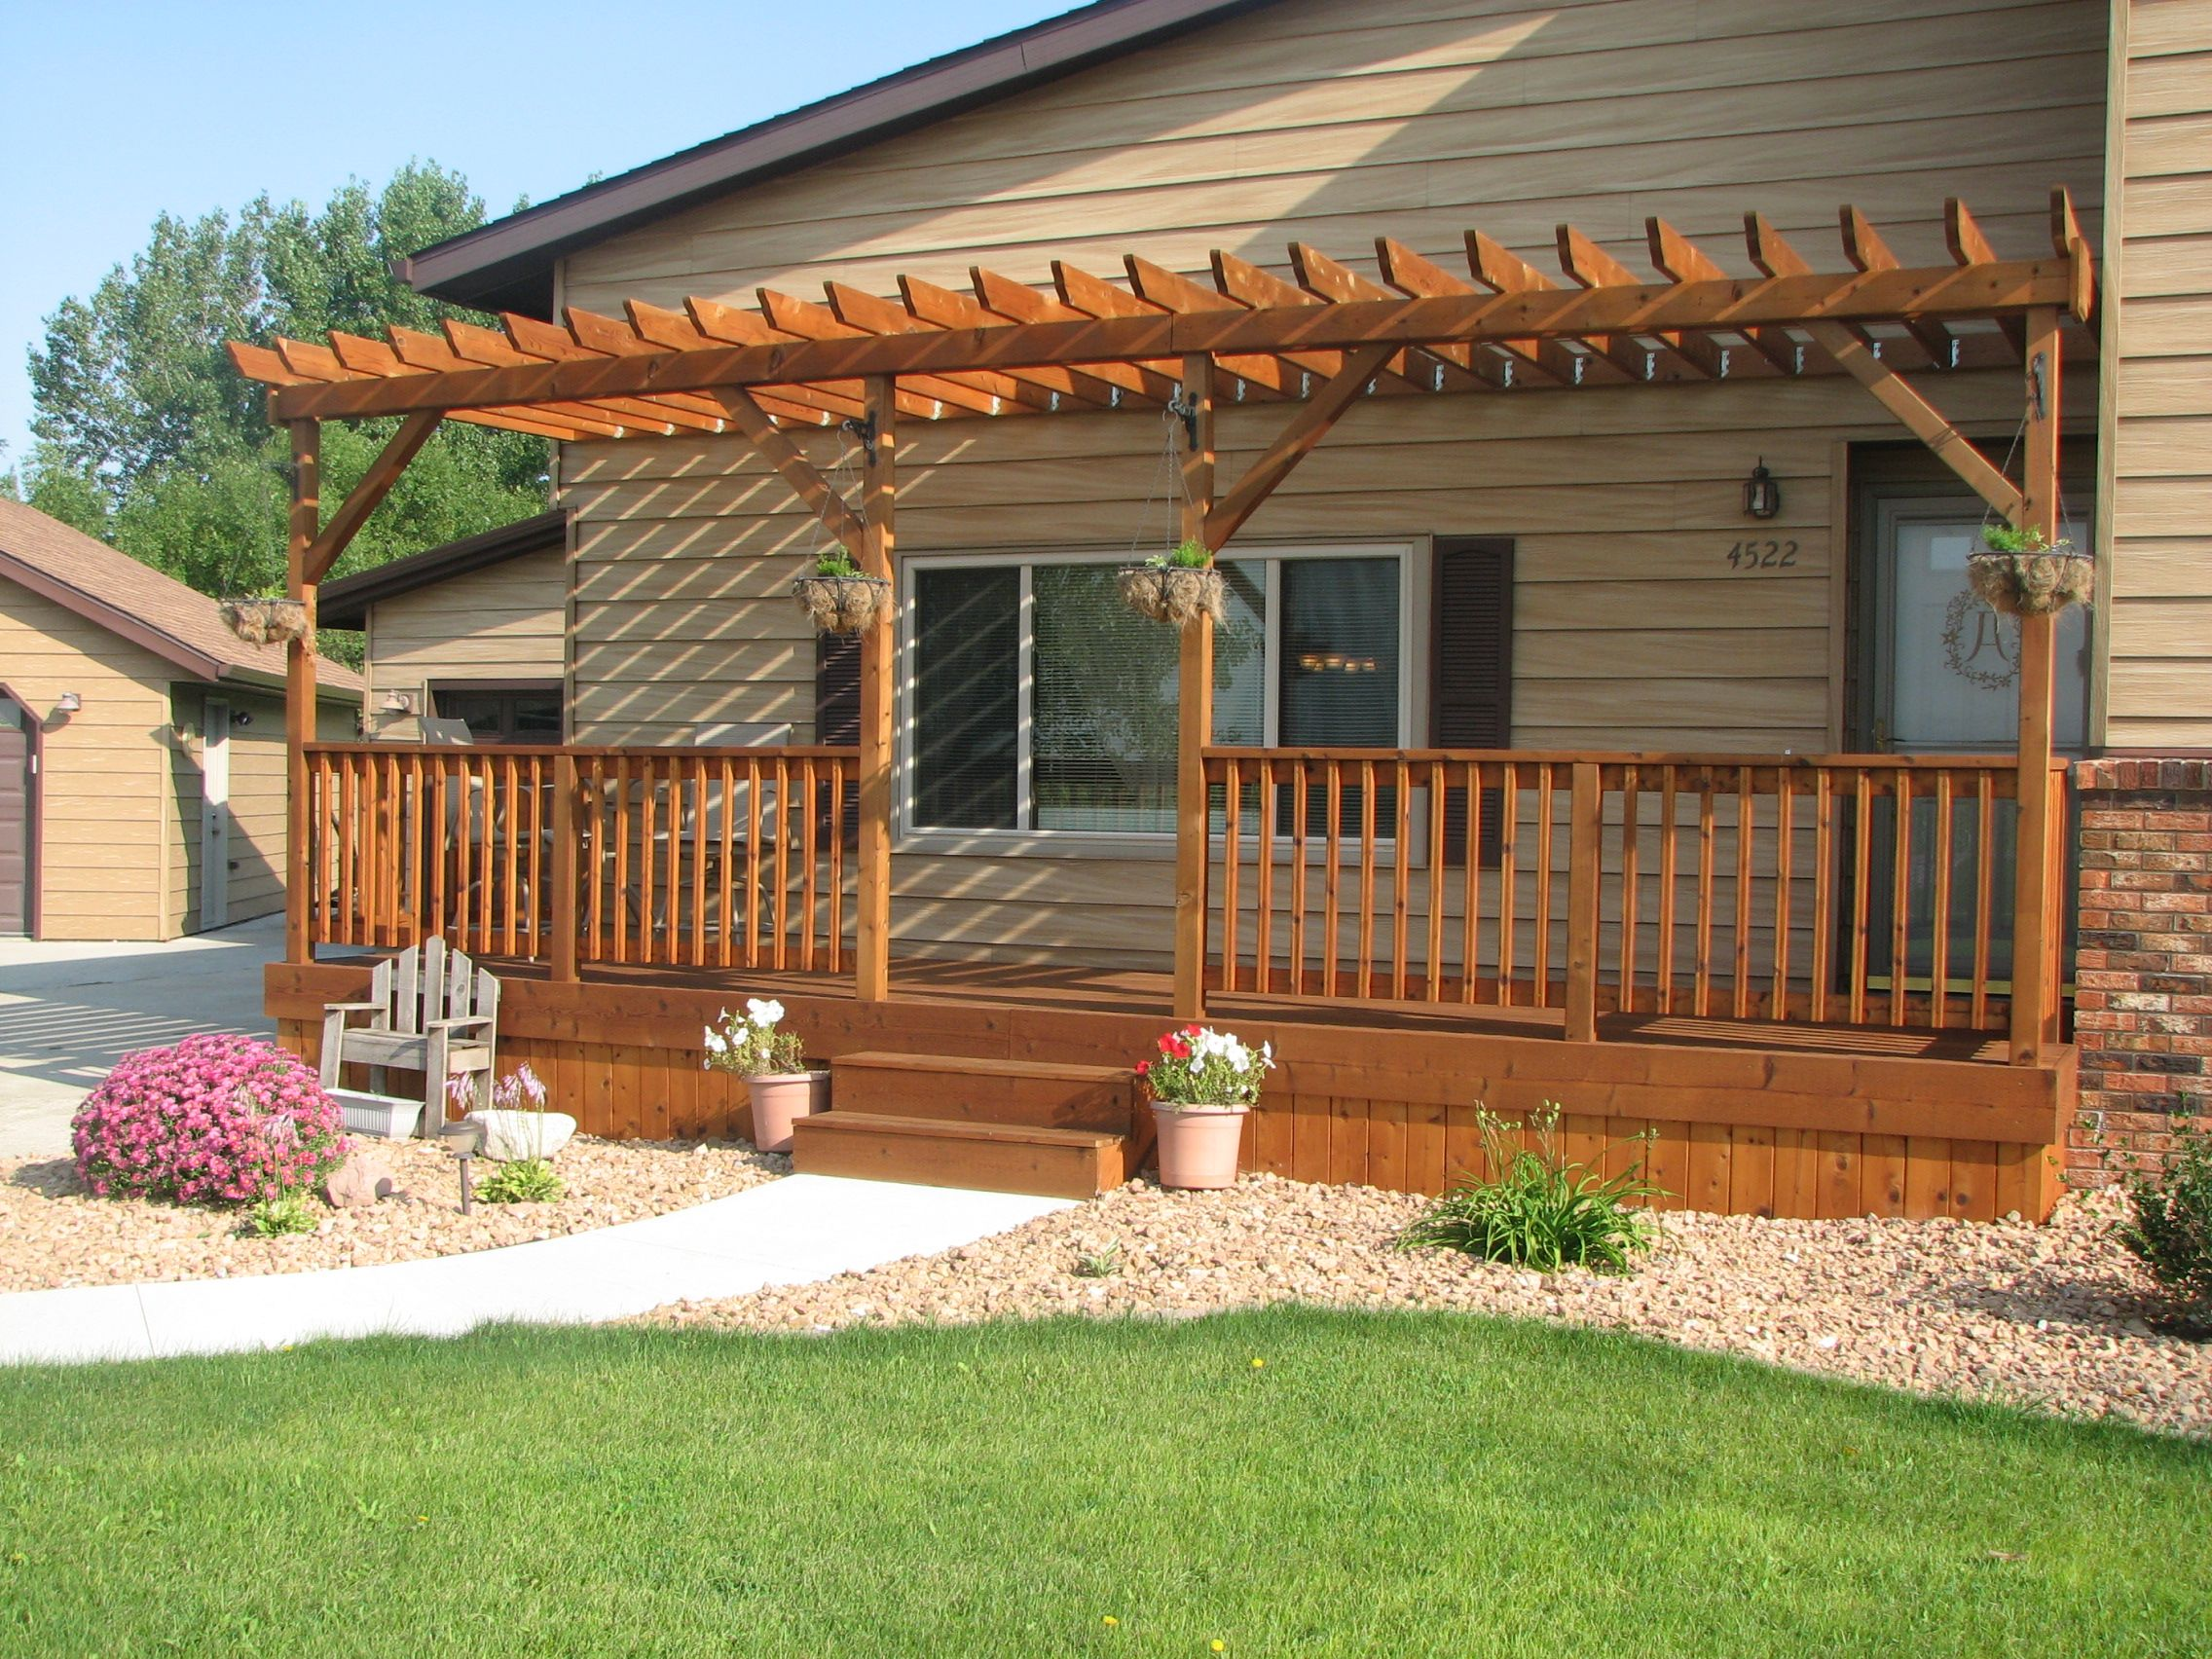 Dreaming is free front porch pergola pergola ideas and for Piani di garage free standing